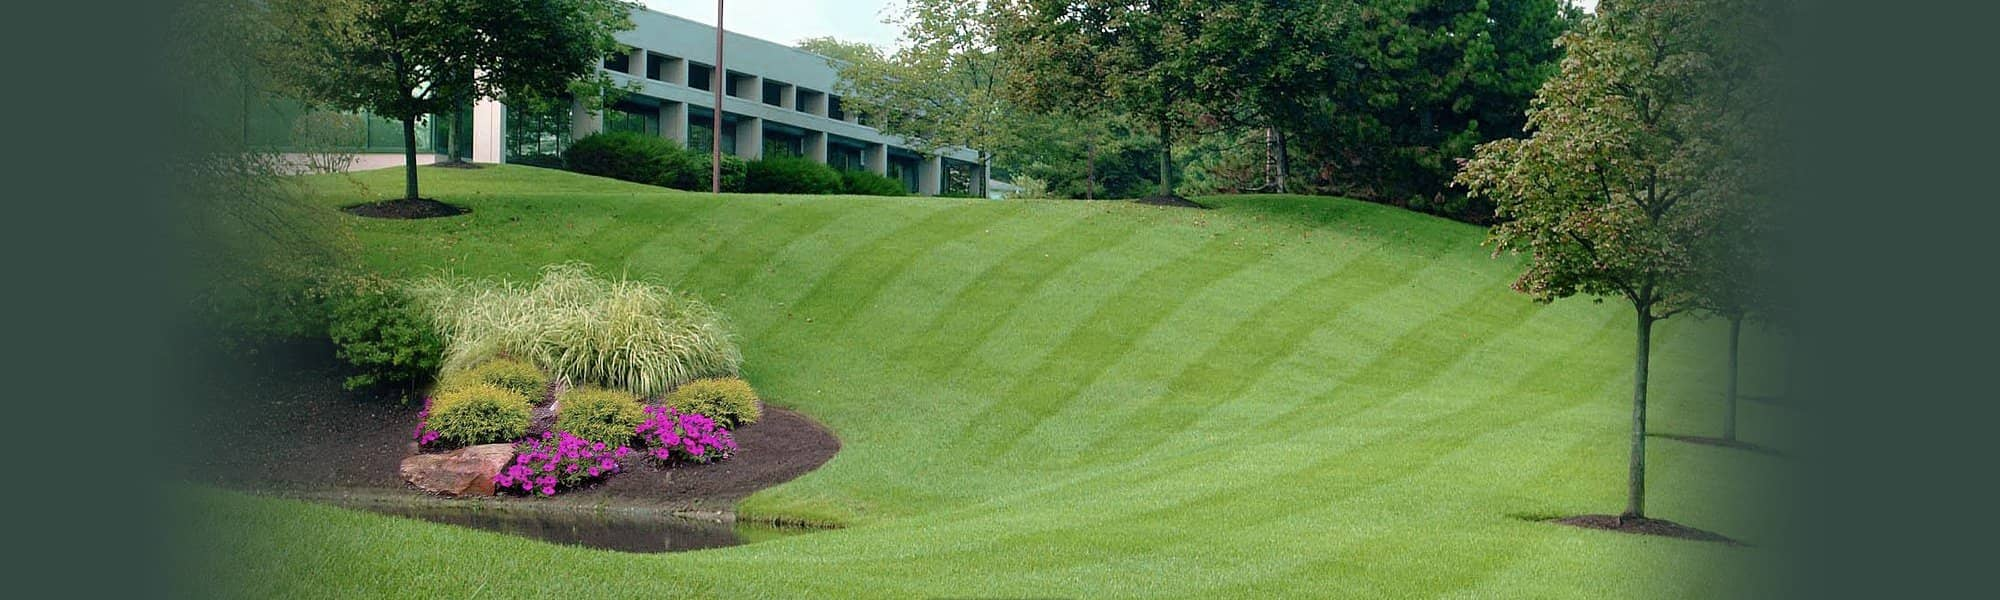 Commercial Turf Management Grounds Maintenance